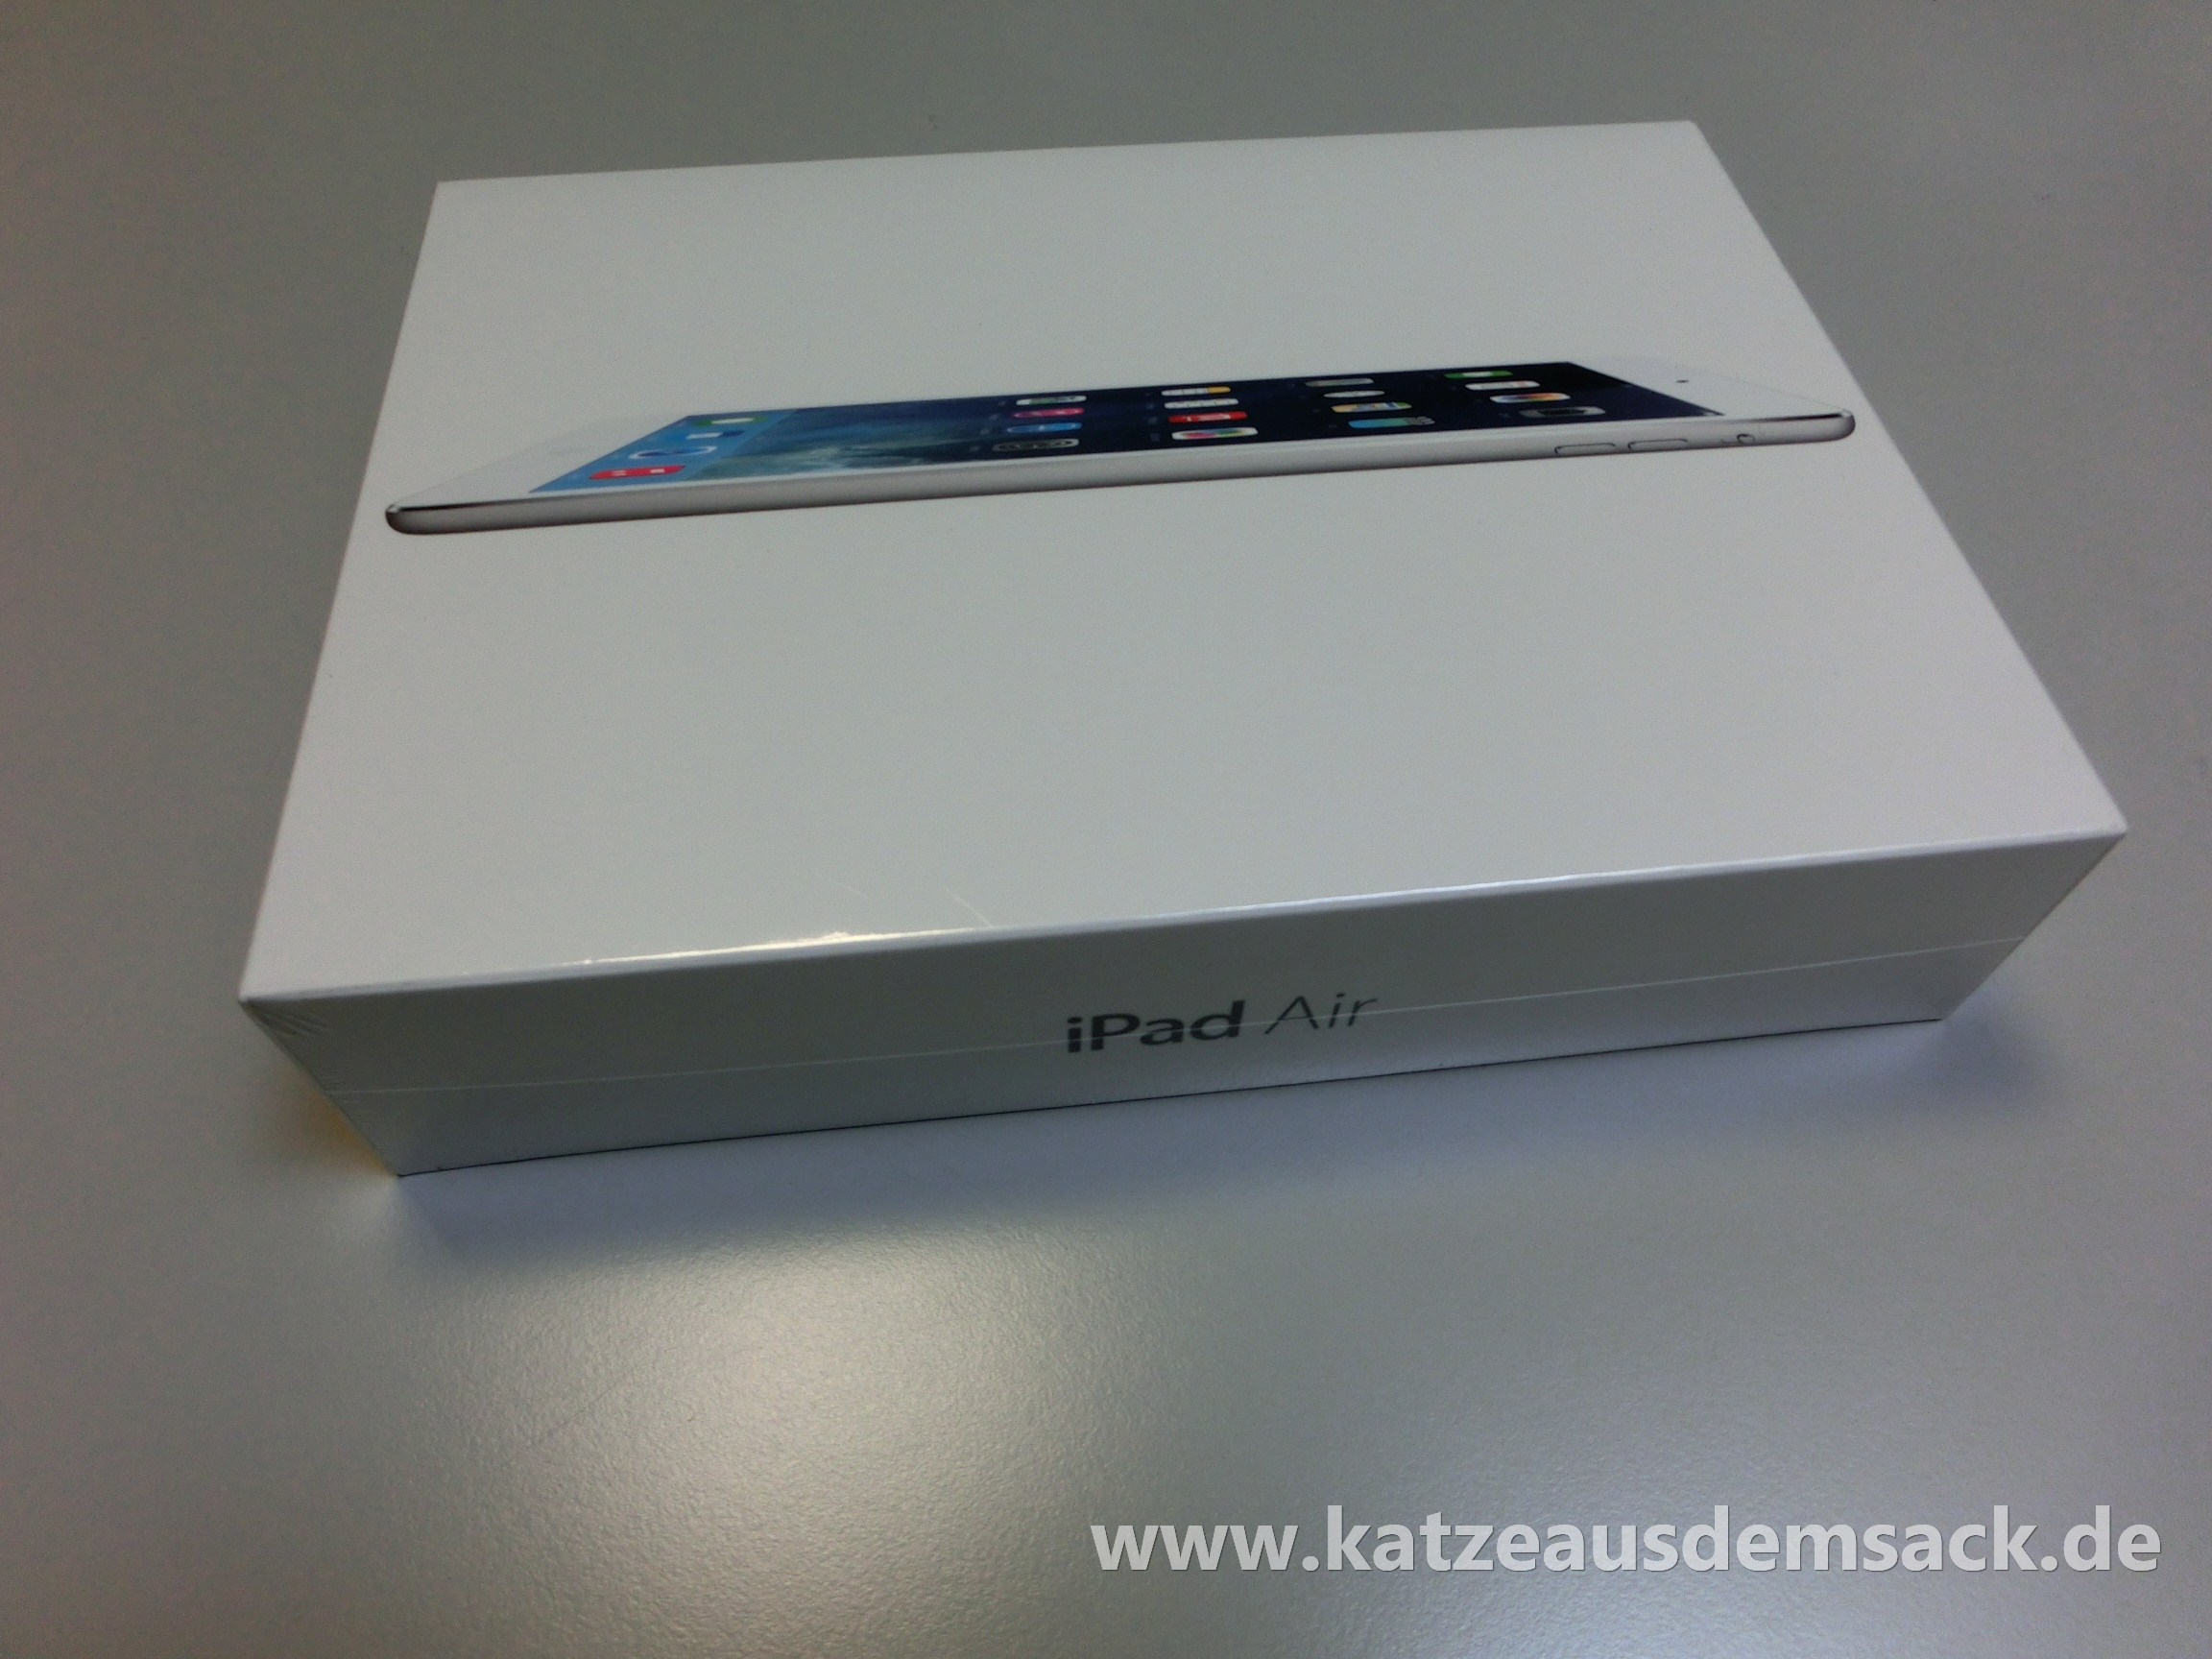 apple unser ipad air ist heute schon eingetroffen. Black Bedroom Furniture Sets. Home Design Ideas